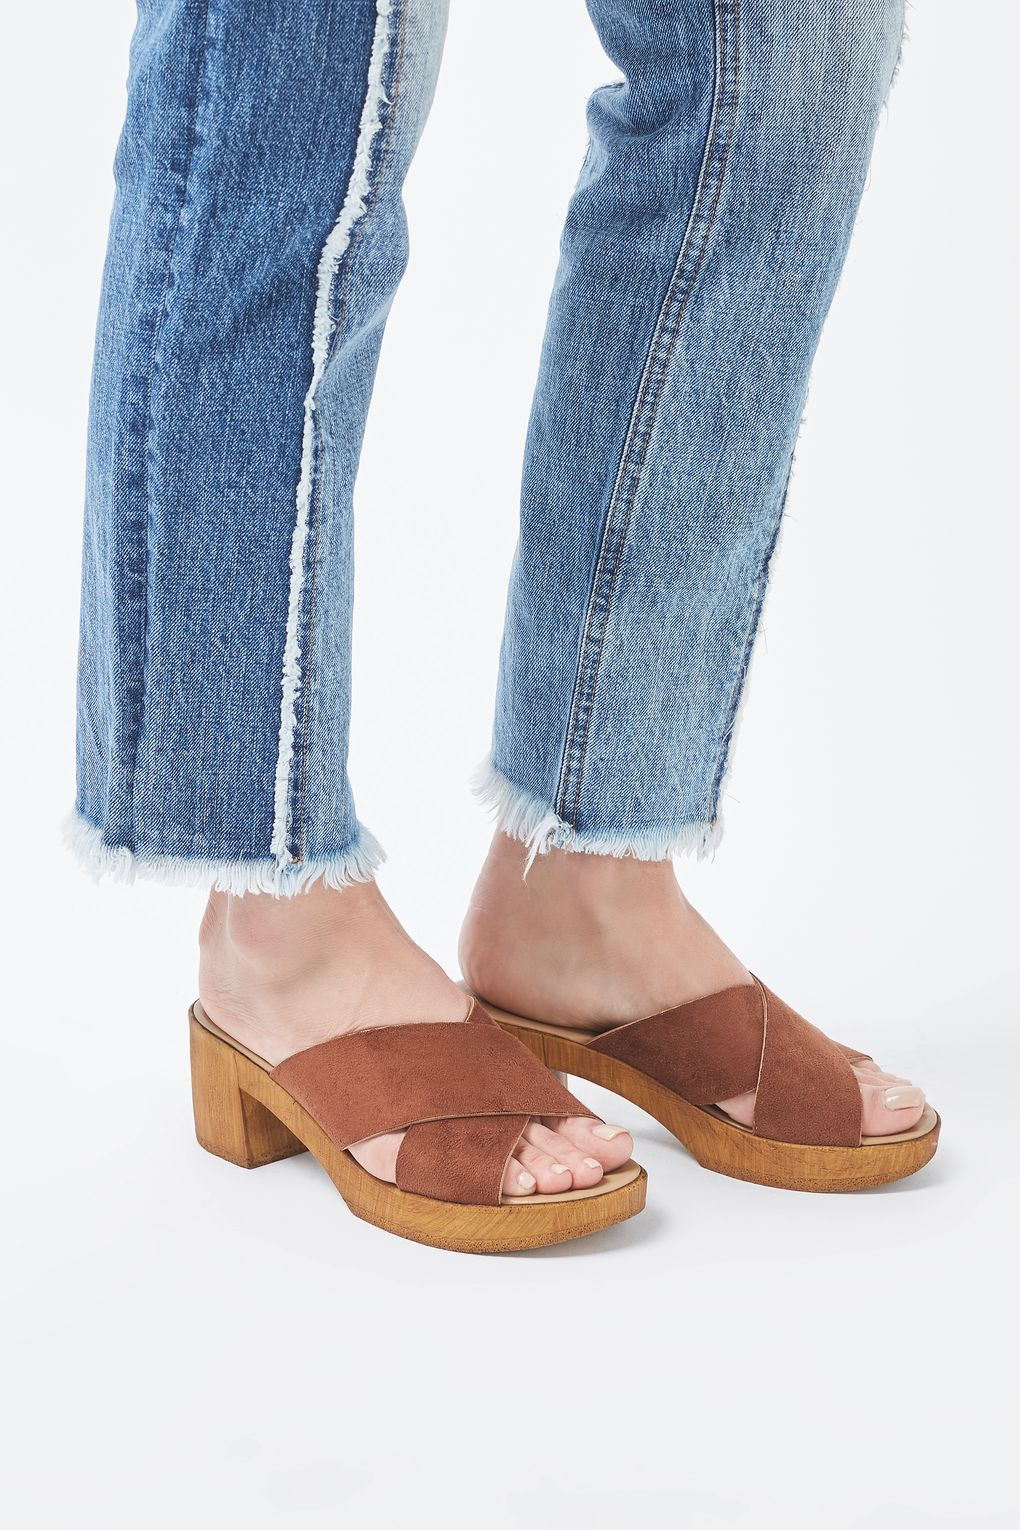 DIXY Mule Clog - New In- Topshop